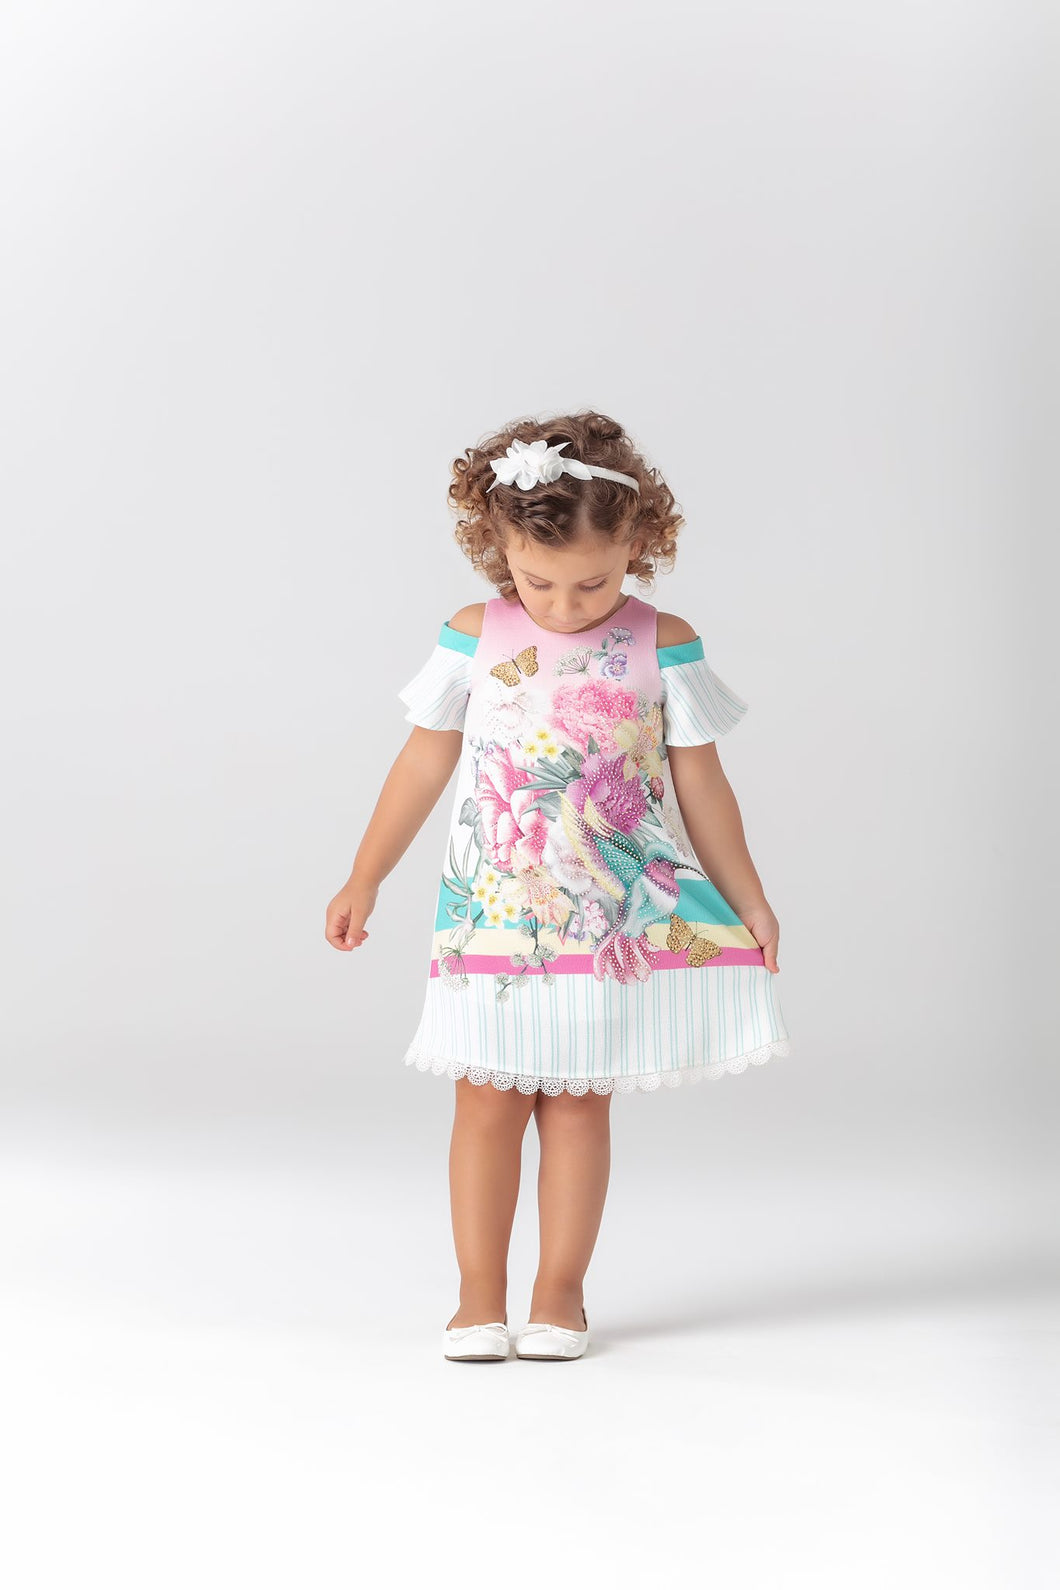 Petite Cherie Hummingbirds with Rhinestone Dress